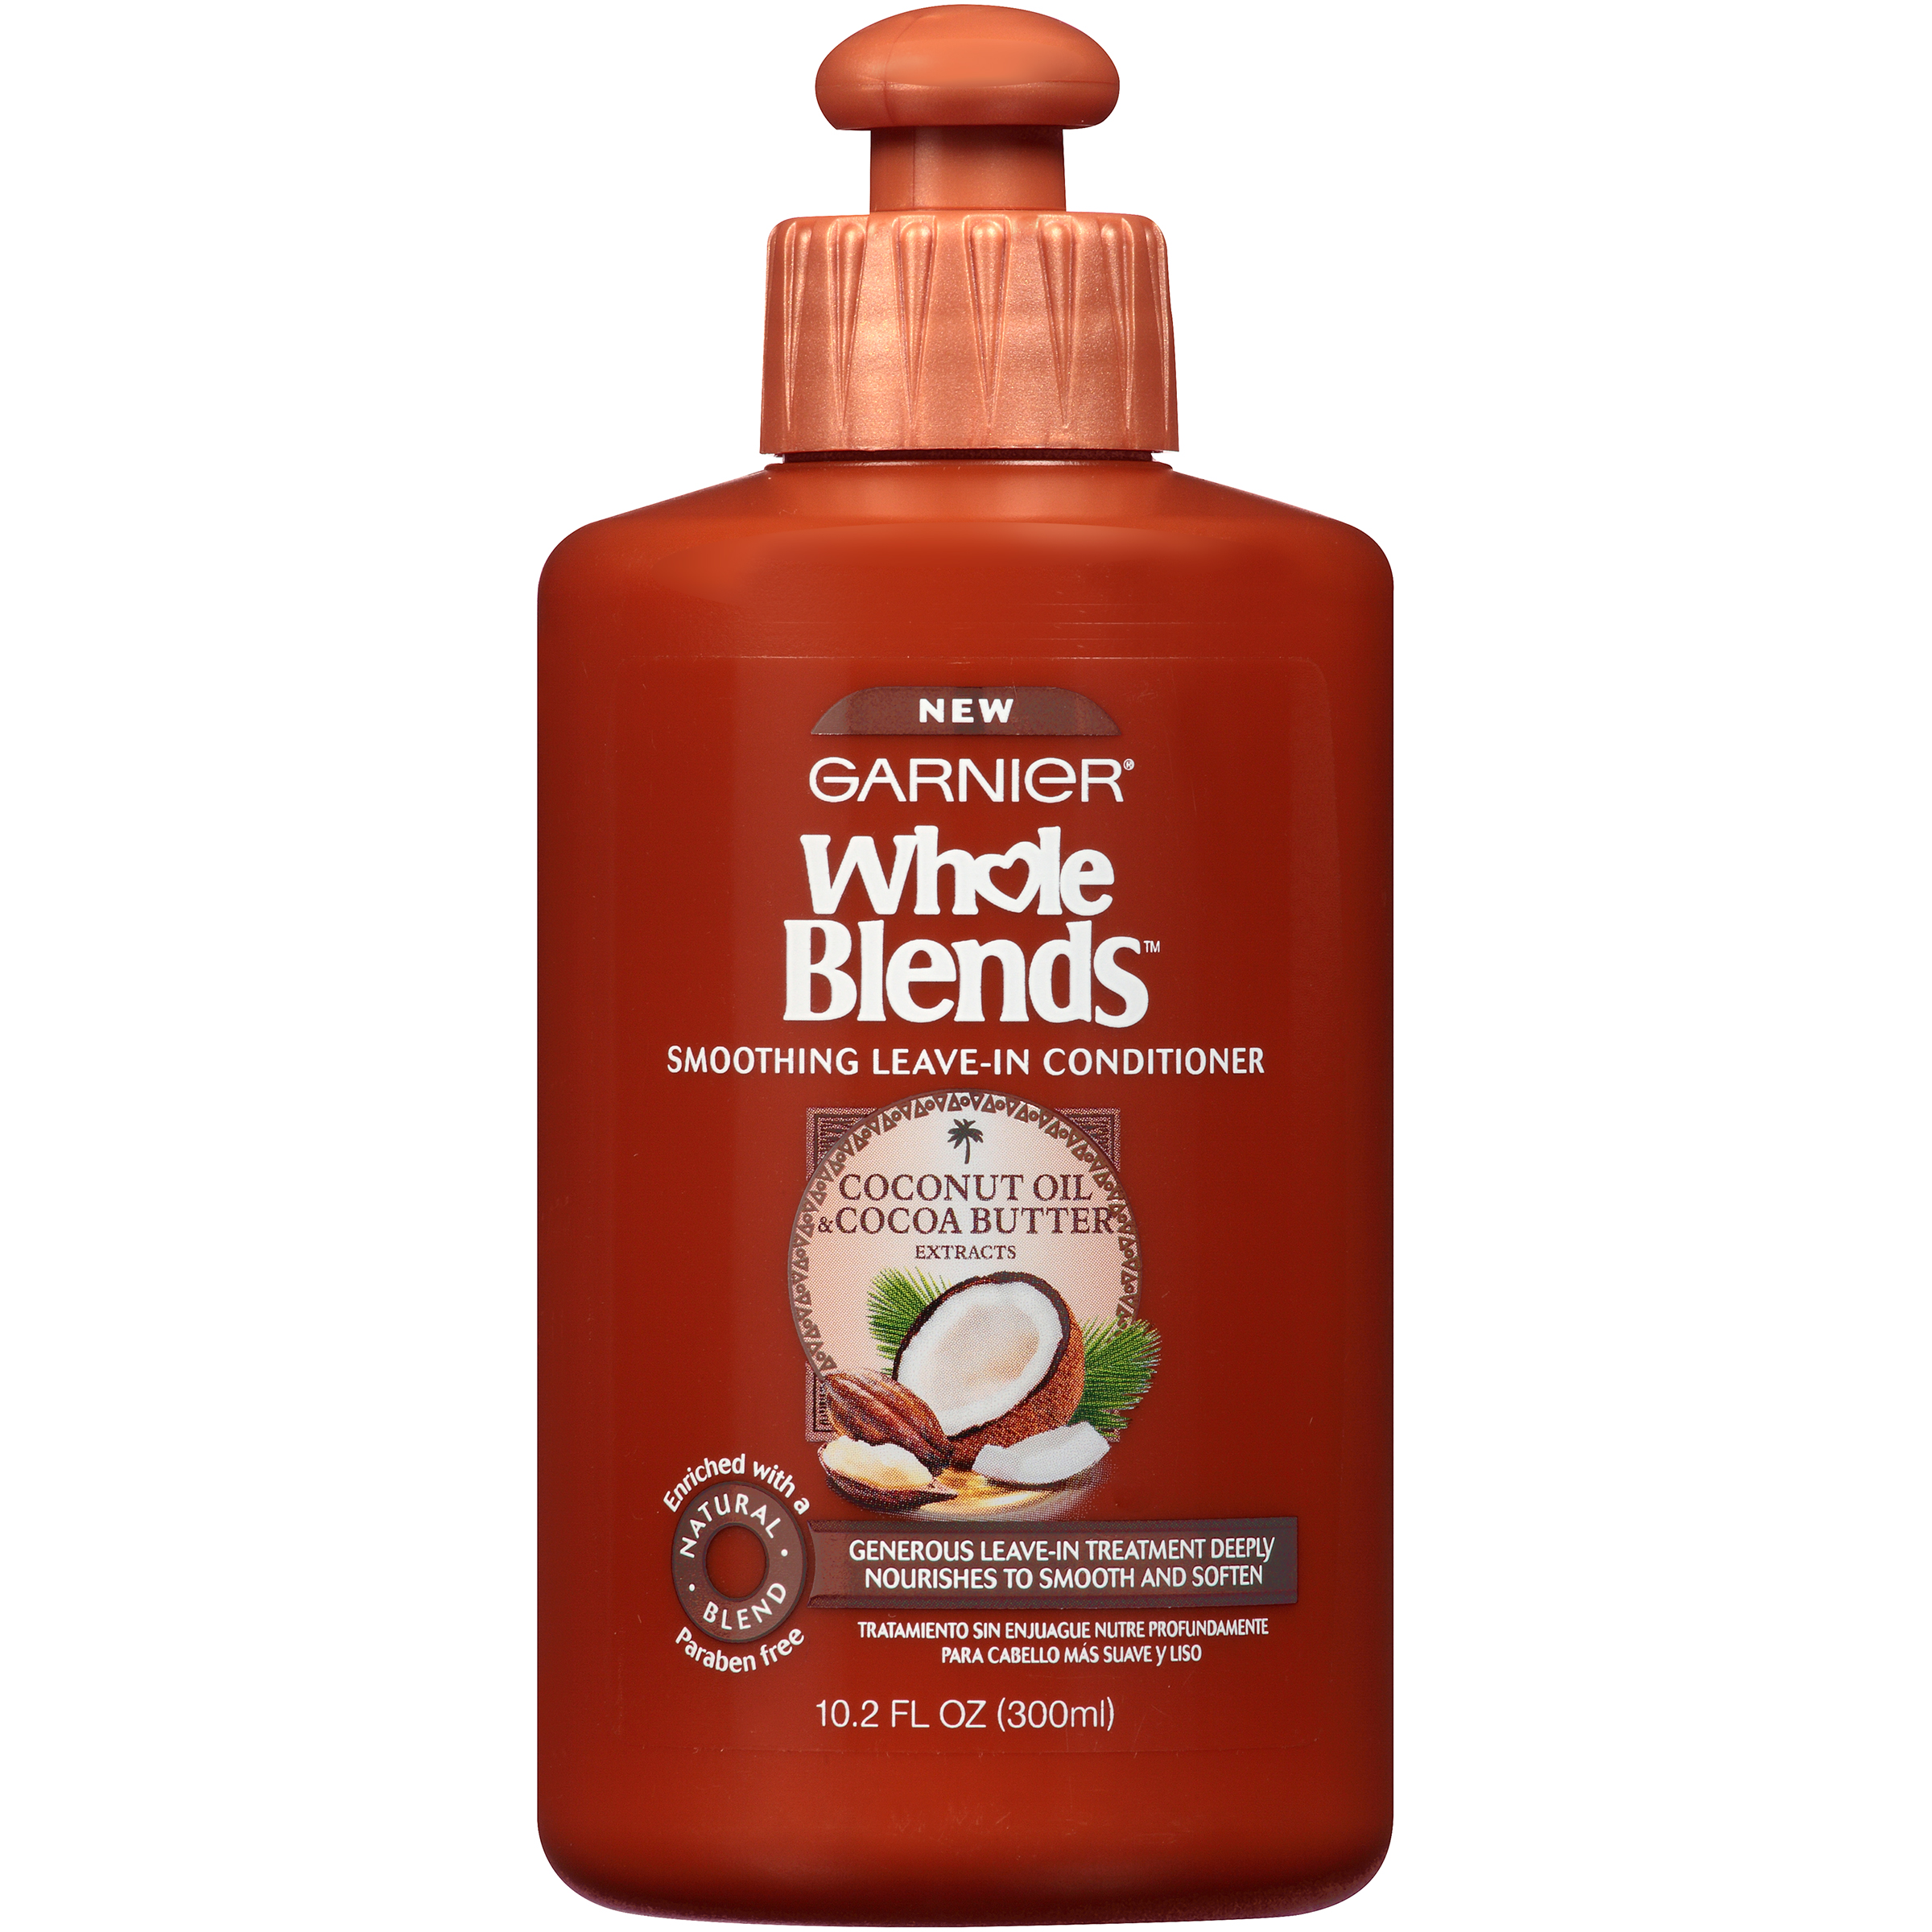 Garnier Whole Blends Coconut Oil Amp Cocoa Butter Extracts